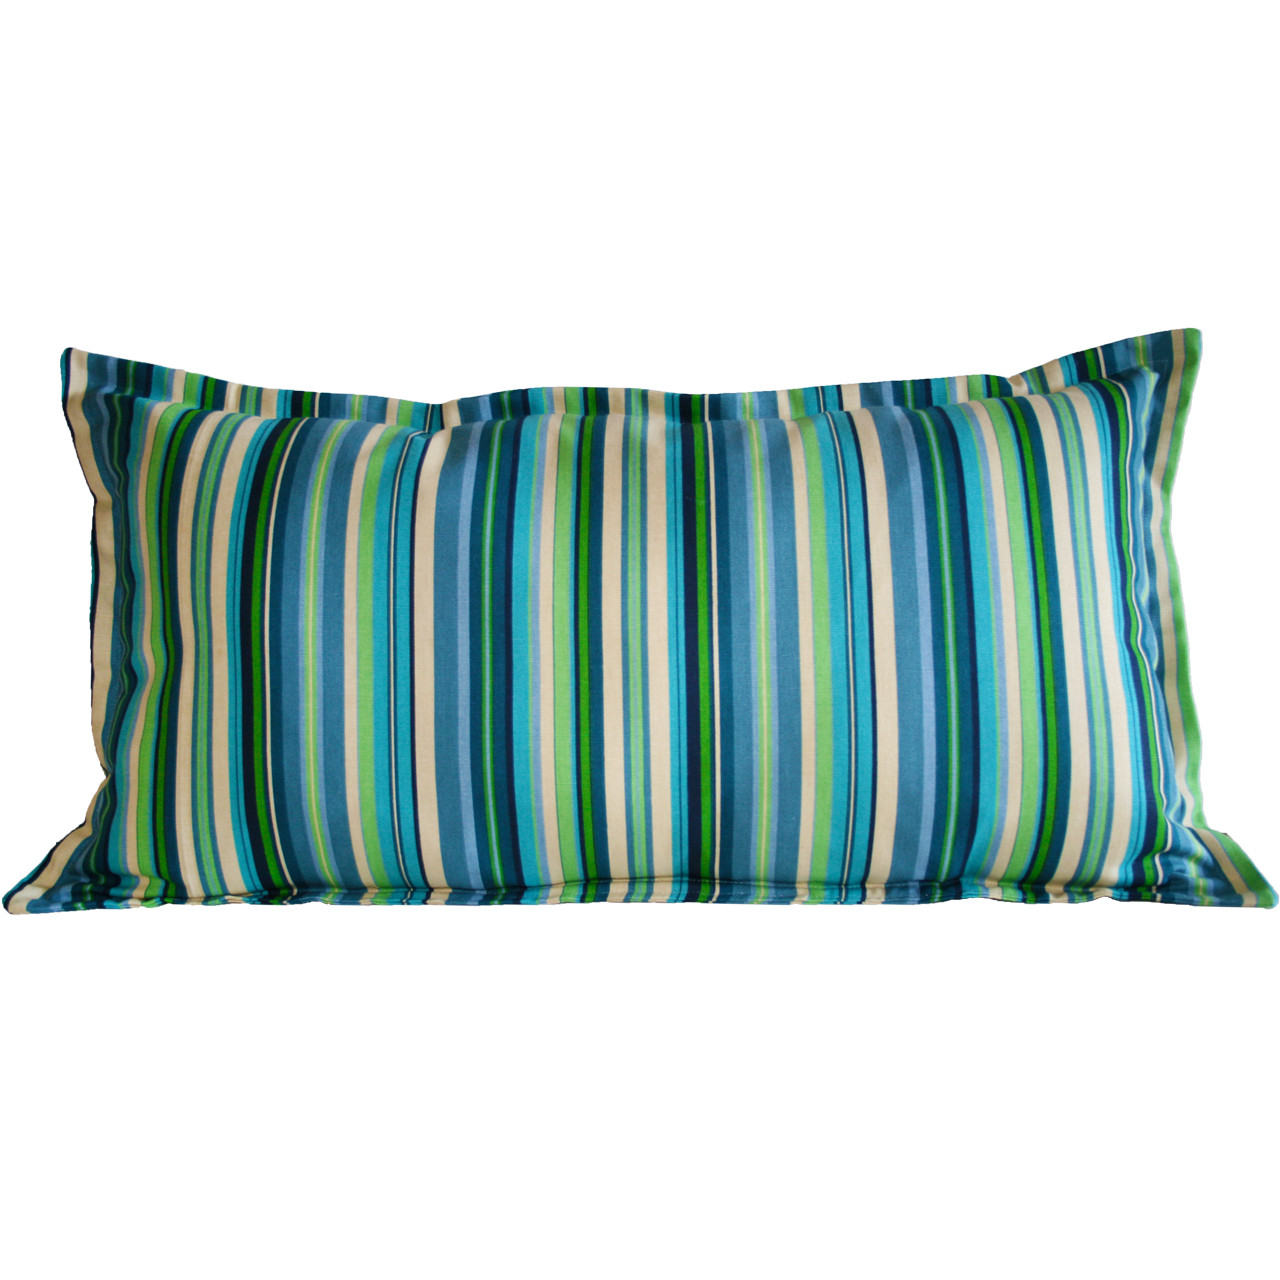 buy cushion almofadas w aliexpress cushions case free fashion unusual cover shipping and wholesale nordic get blue com pillow pillows trending green throw on